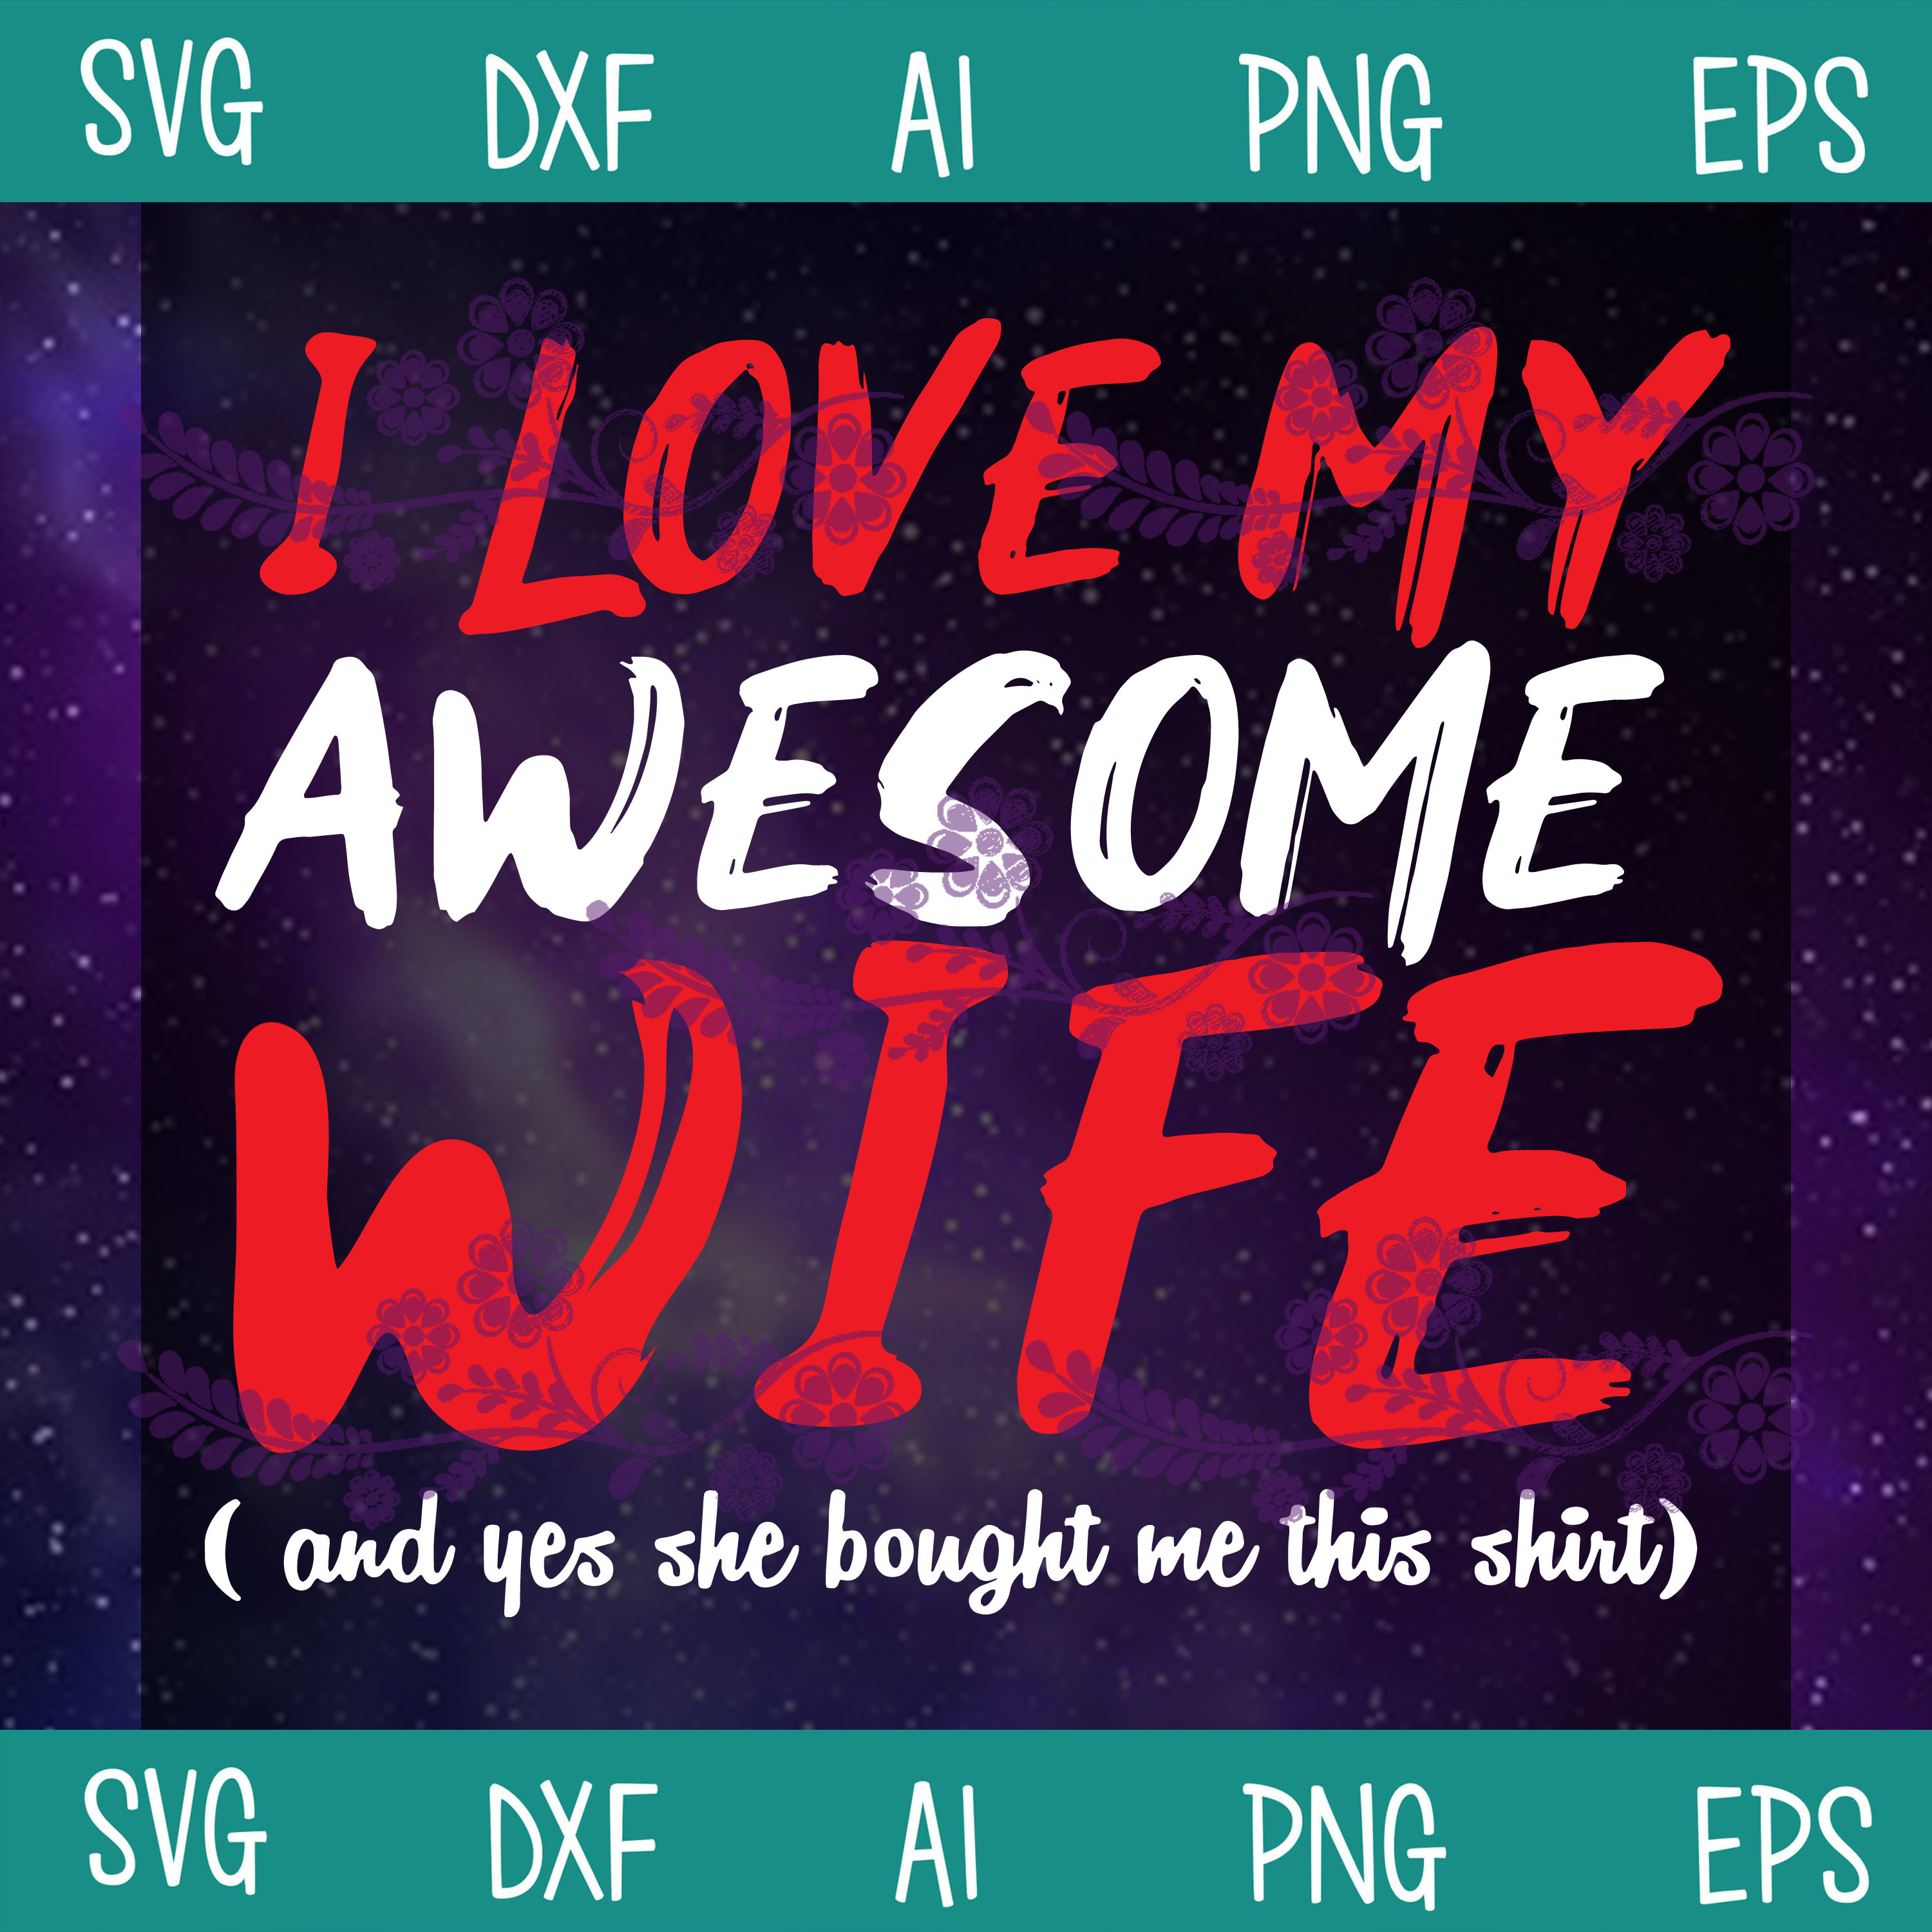 I Love You Awesome Wife SVG, Wife SVG, Family SVG, SVG, DXF, EPS, PNG , AI